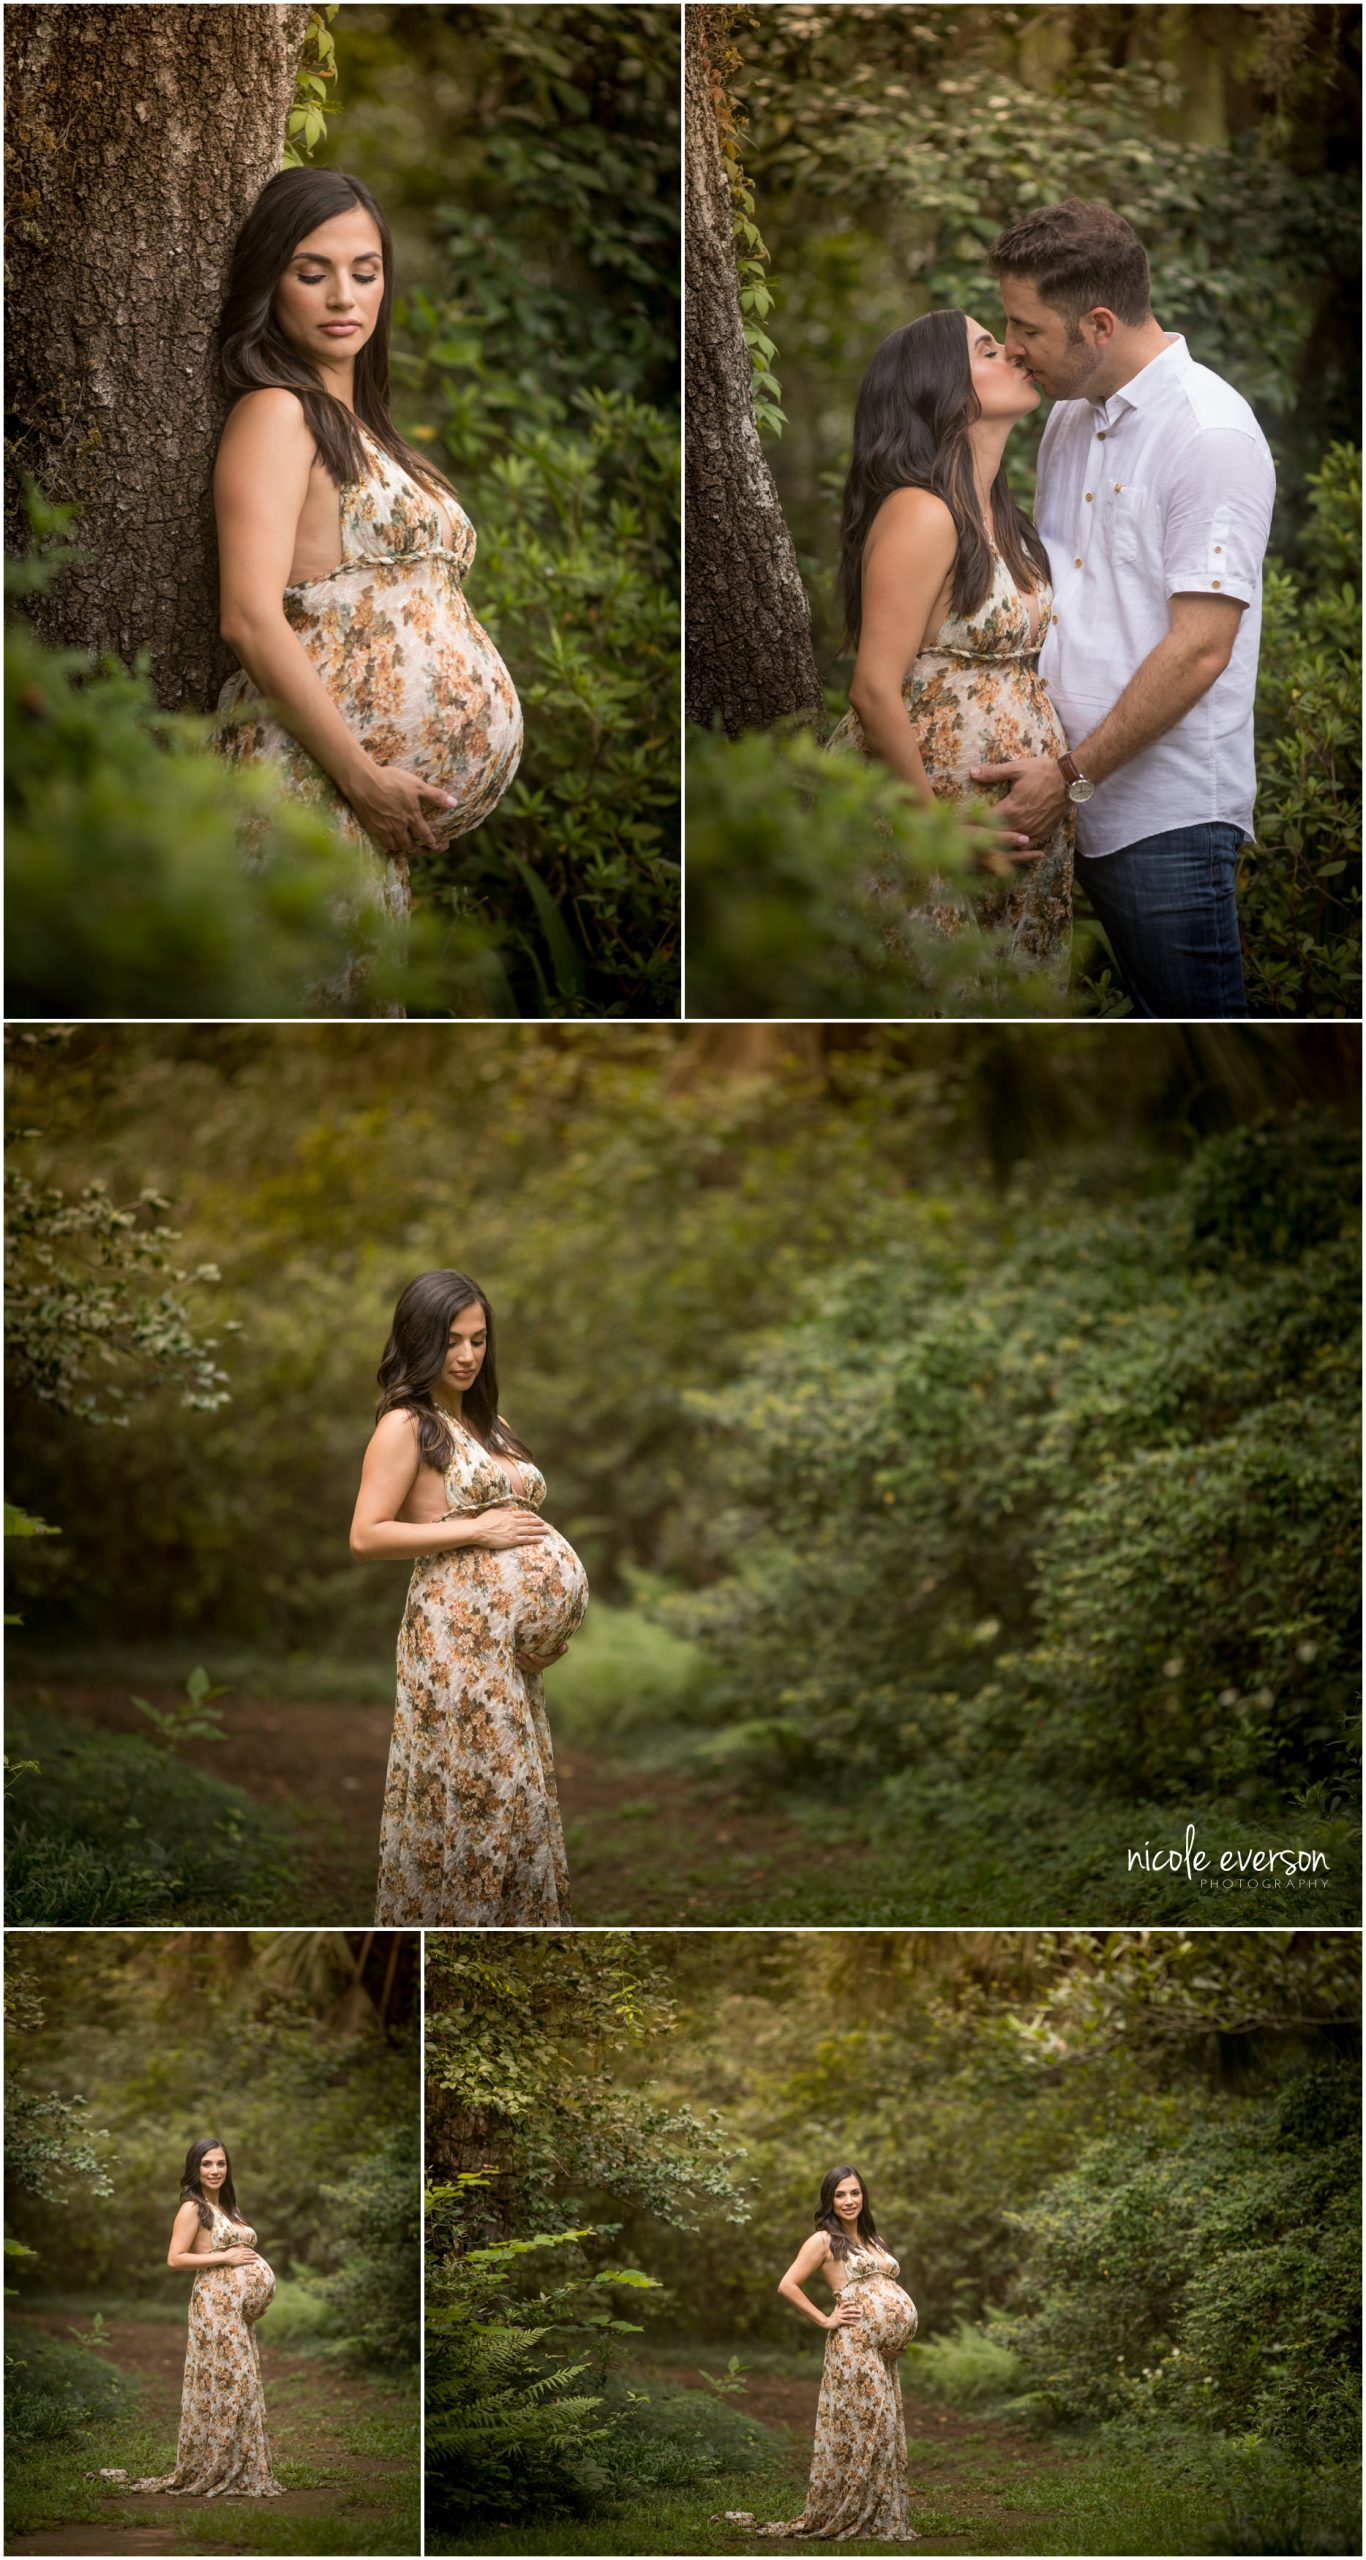 maternity photos taken at Mc Clay gardens in Tallahassee FL